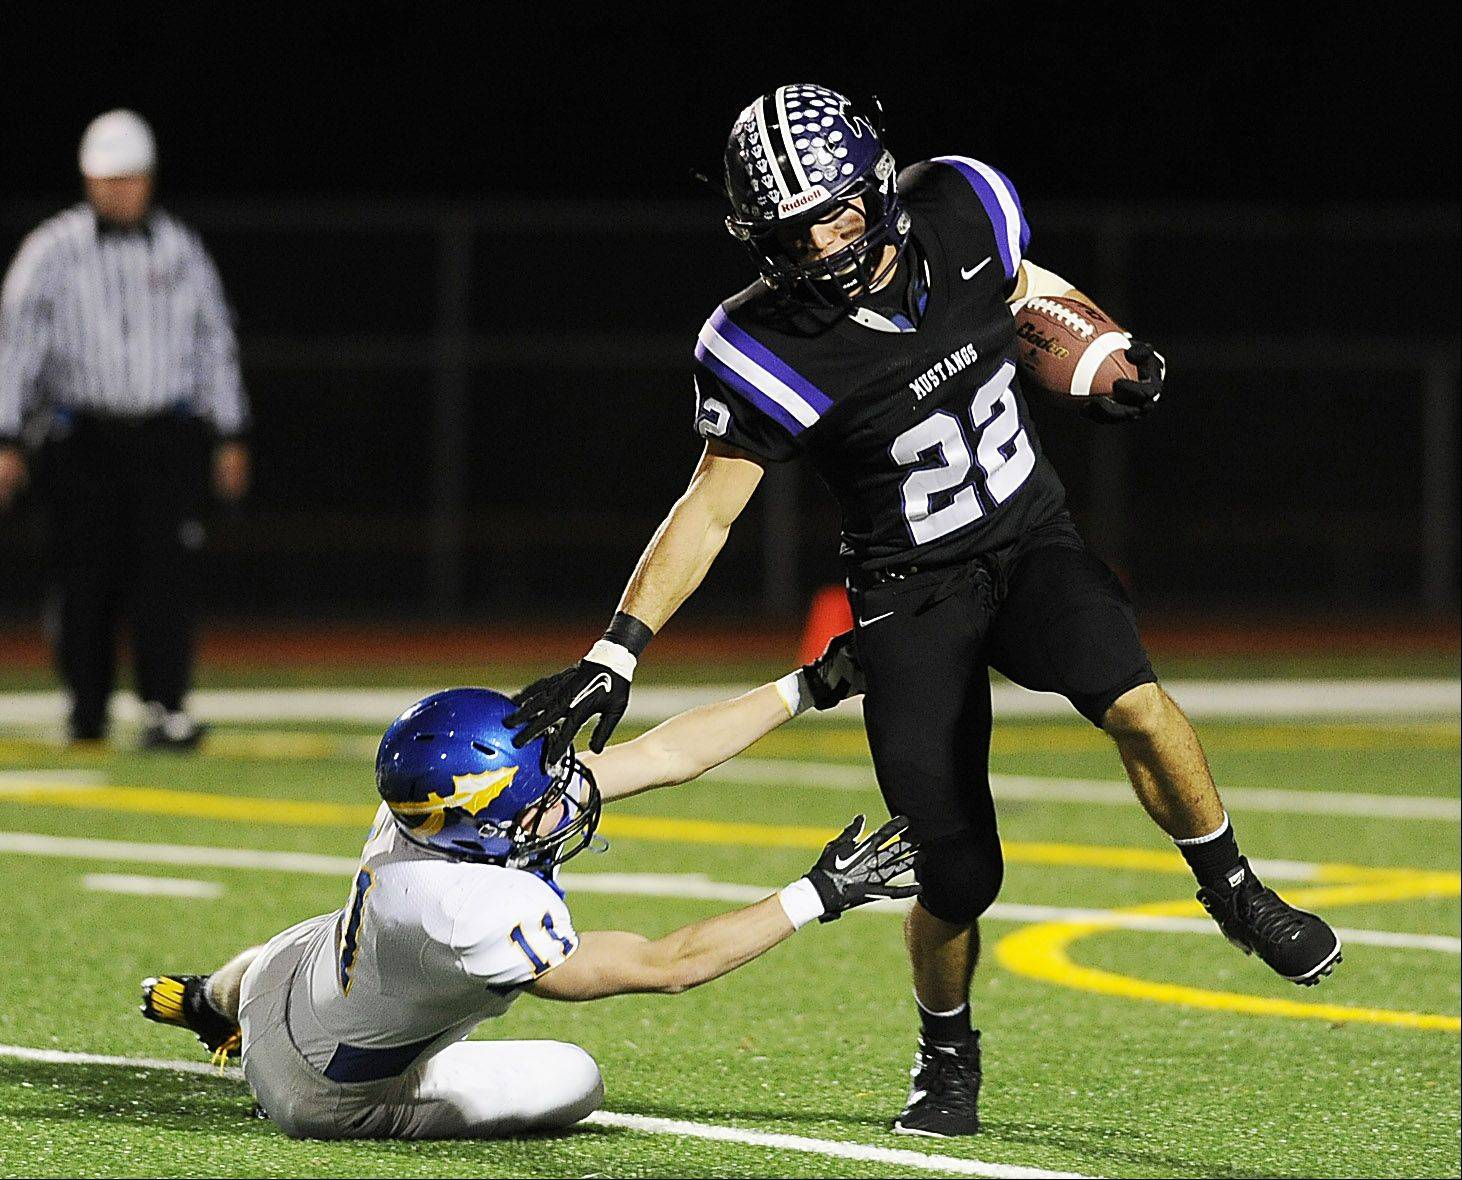 Mark Welsh/mwelsh@dailyherald.com Rolling Meadow's Austin Reed fends off Lake Forest's Andy Nelson in the first quarter in the Class 6A playoff football game at Rolling Meadows High School on Friday.